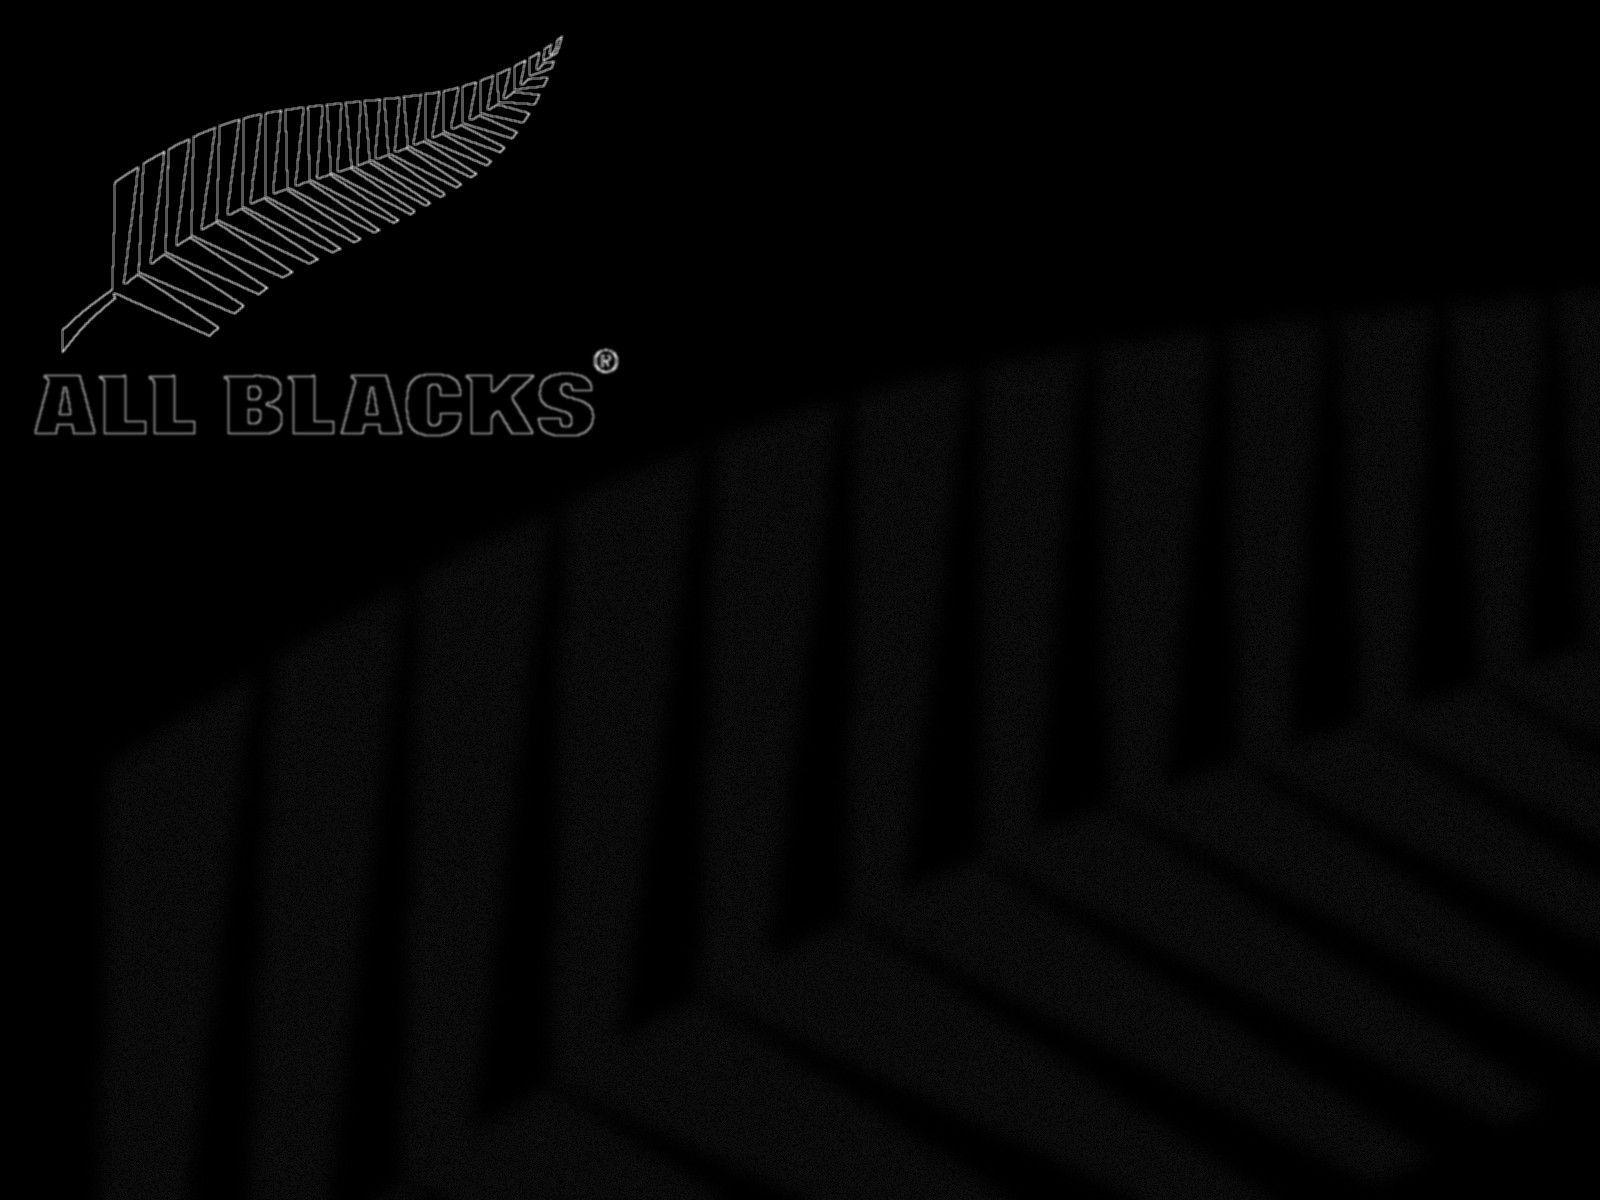 All Black Wallpapers and Backgrounds